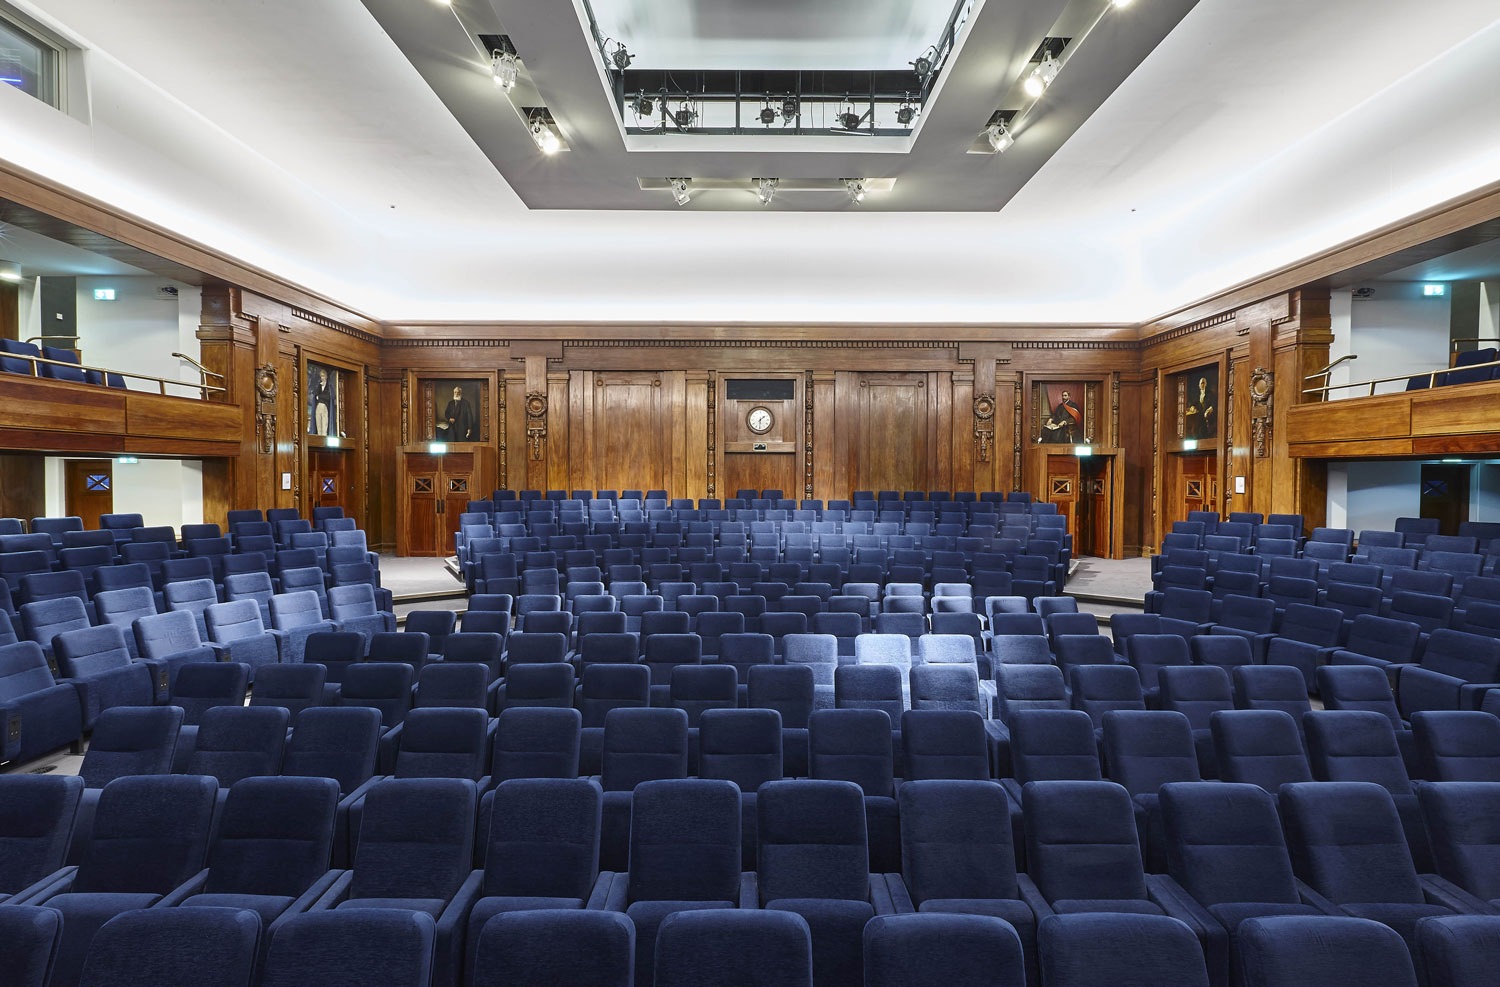 Institute of Engineering and Technology Kelvin Lecture Theatre | Commercial Photography